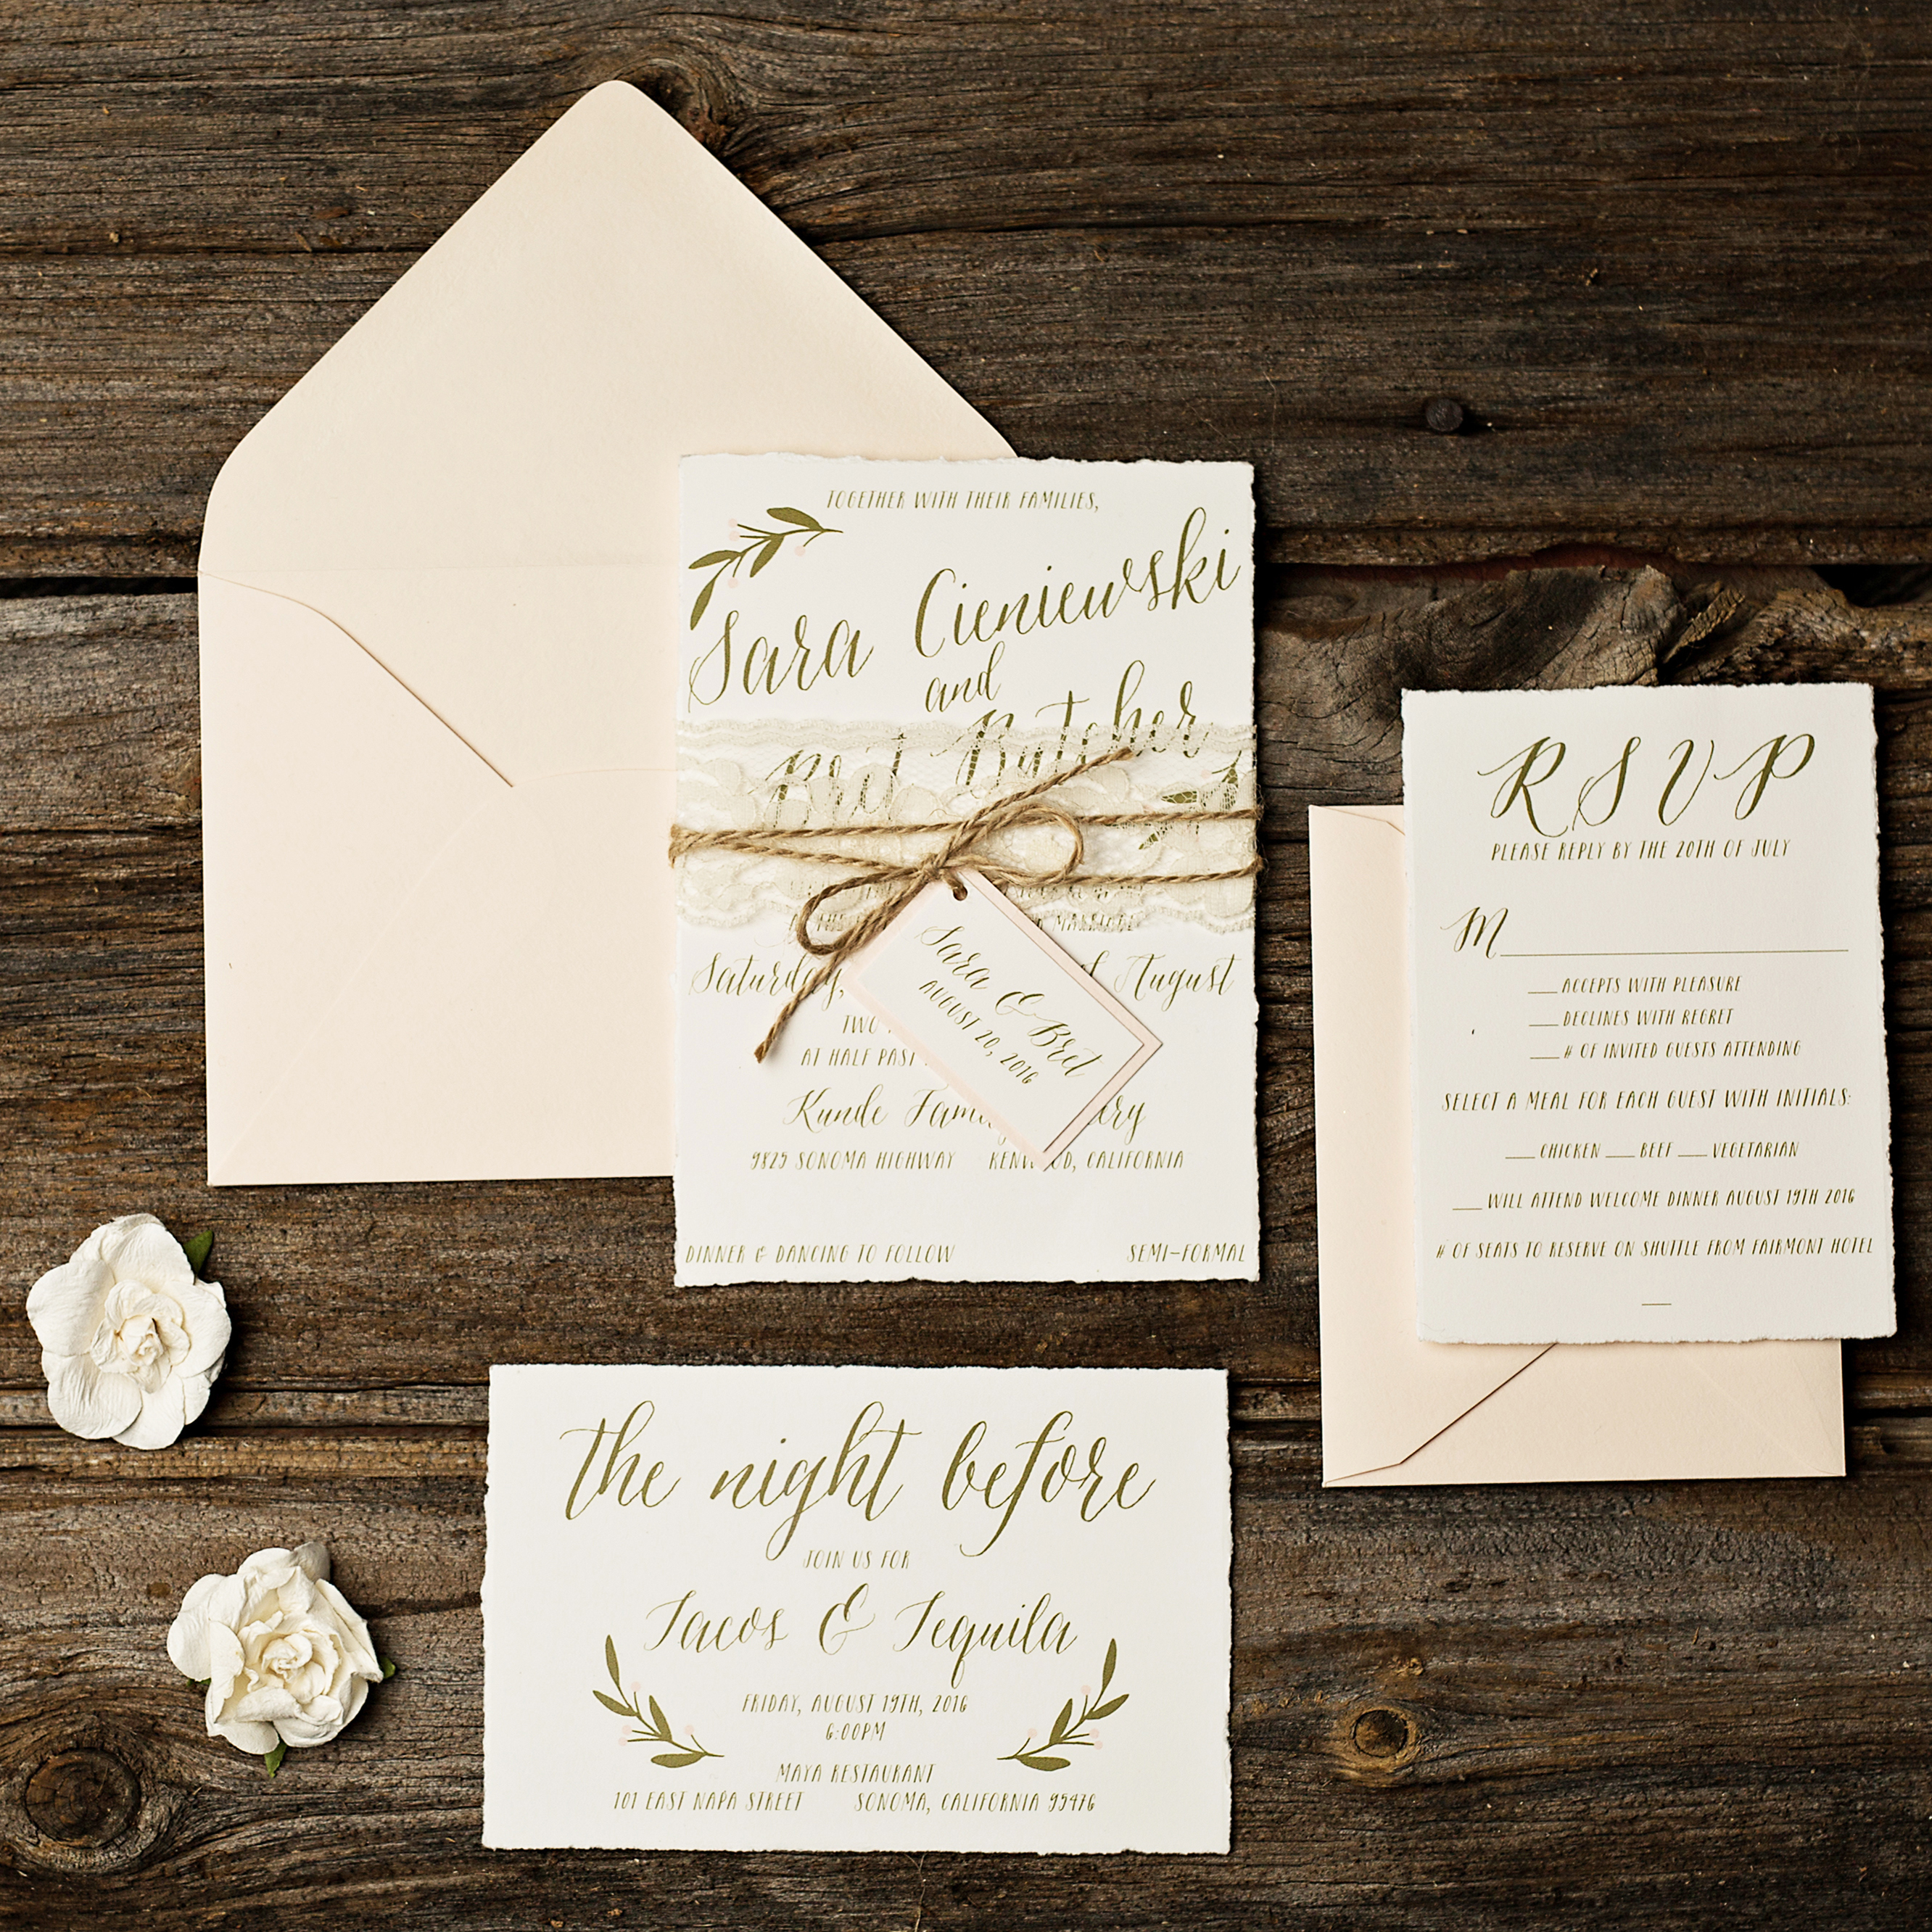 Rustic Vineyard Wedding Invitations Too Chic Little Shab Design